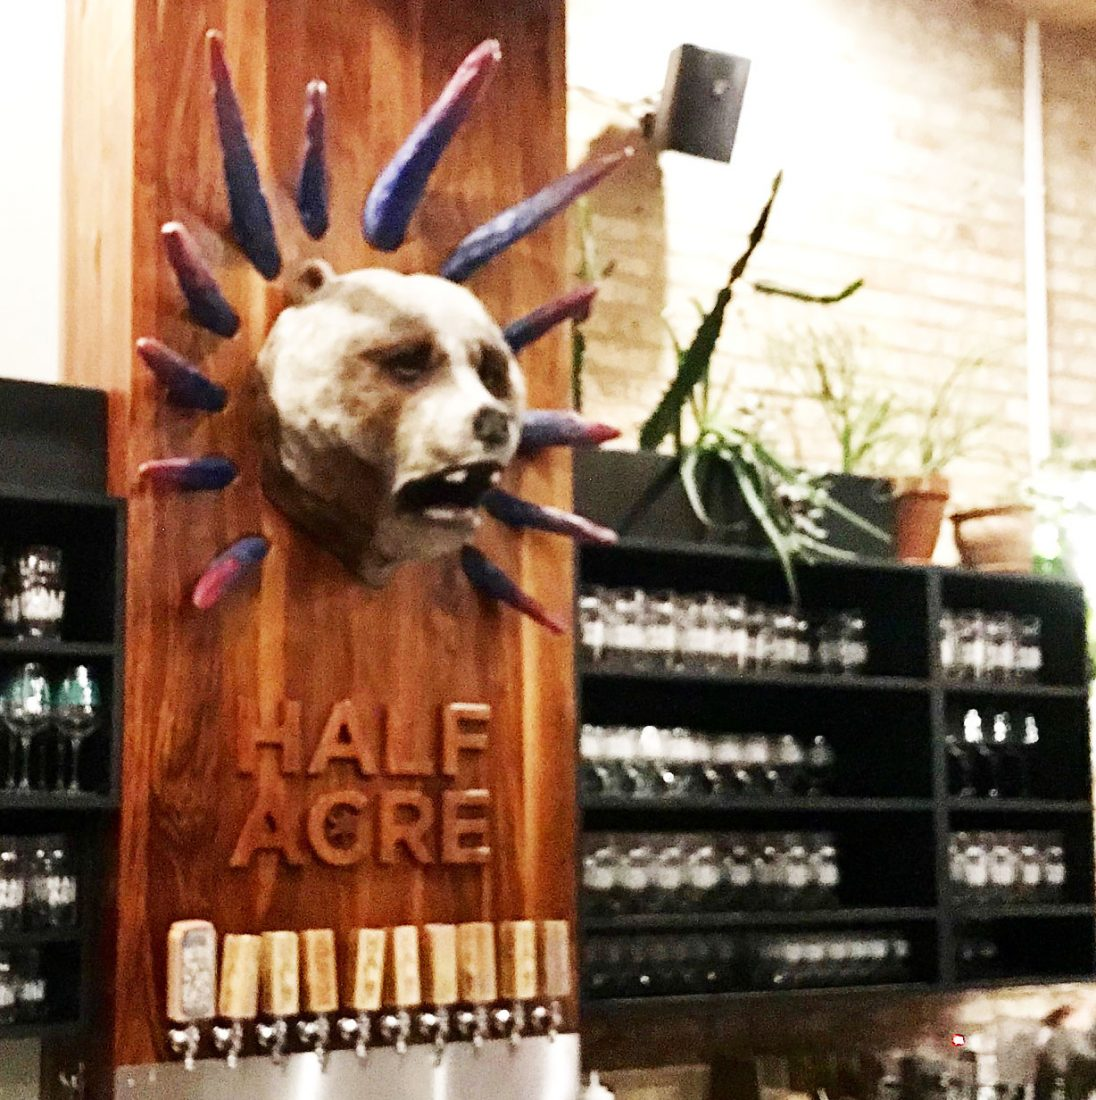 448. Half Acre Brewing, Chicago IL, 2019